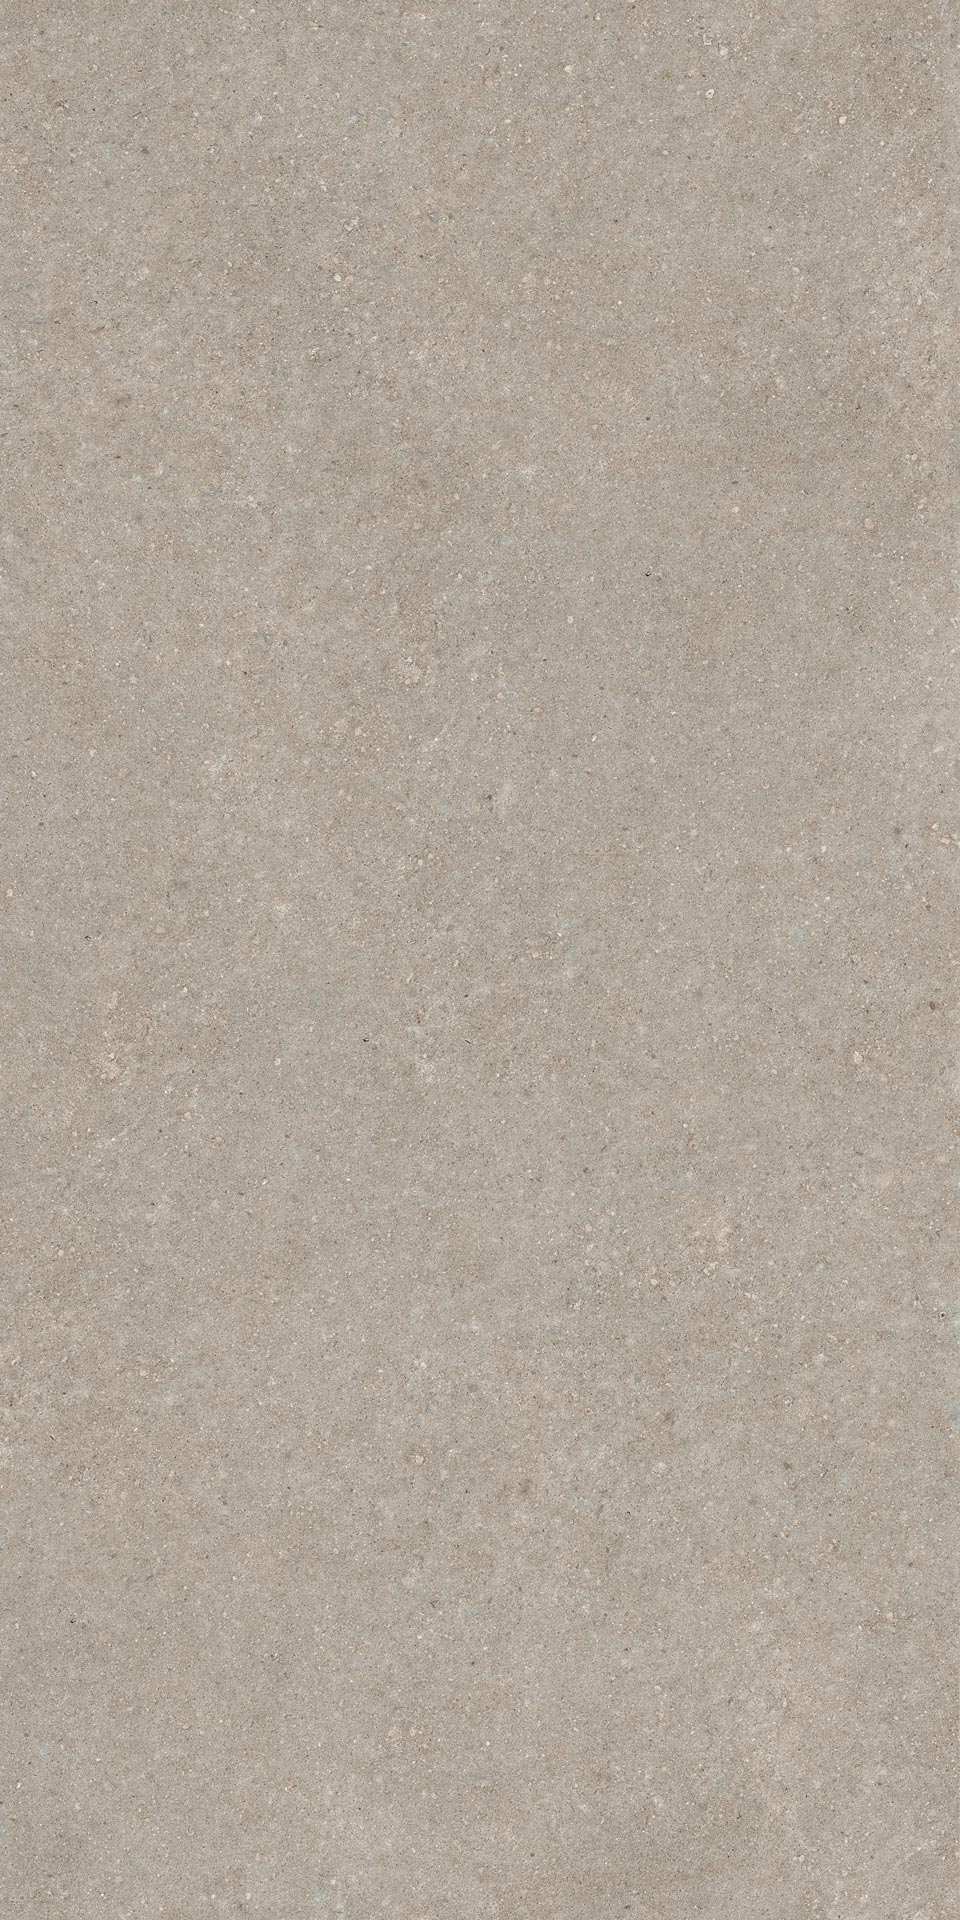 atlas-plan-kone-pearl-large-surface-in-porcelain-tile-for-indoors-and-outdoors